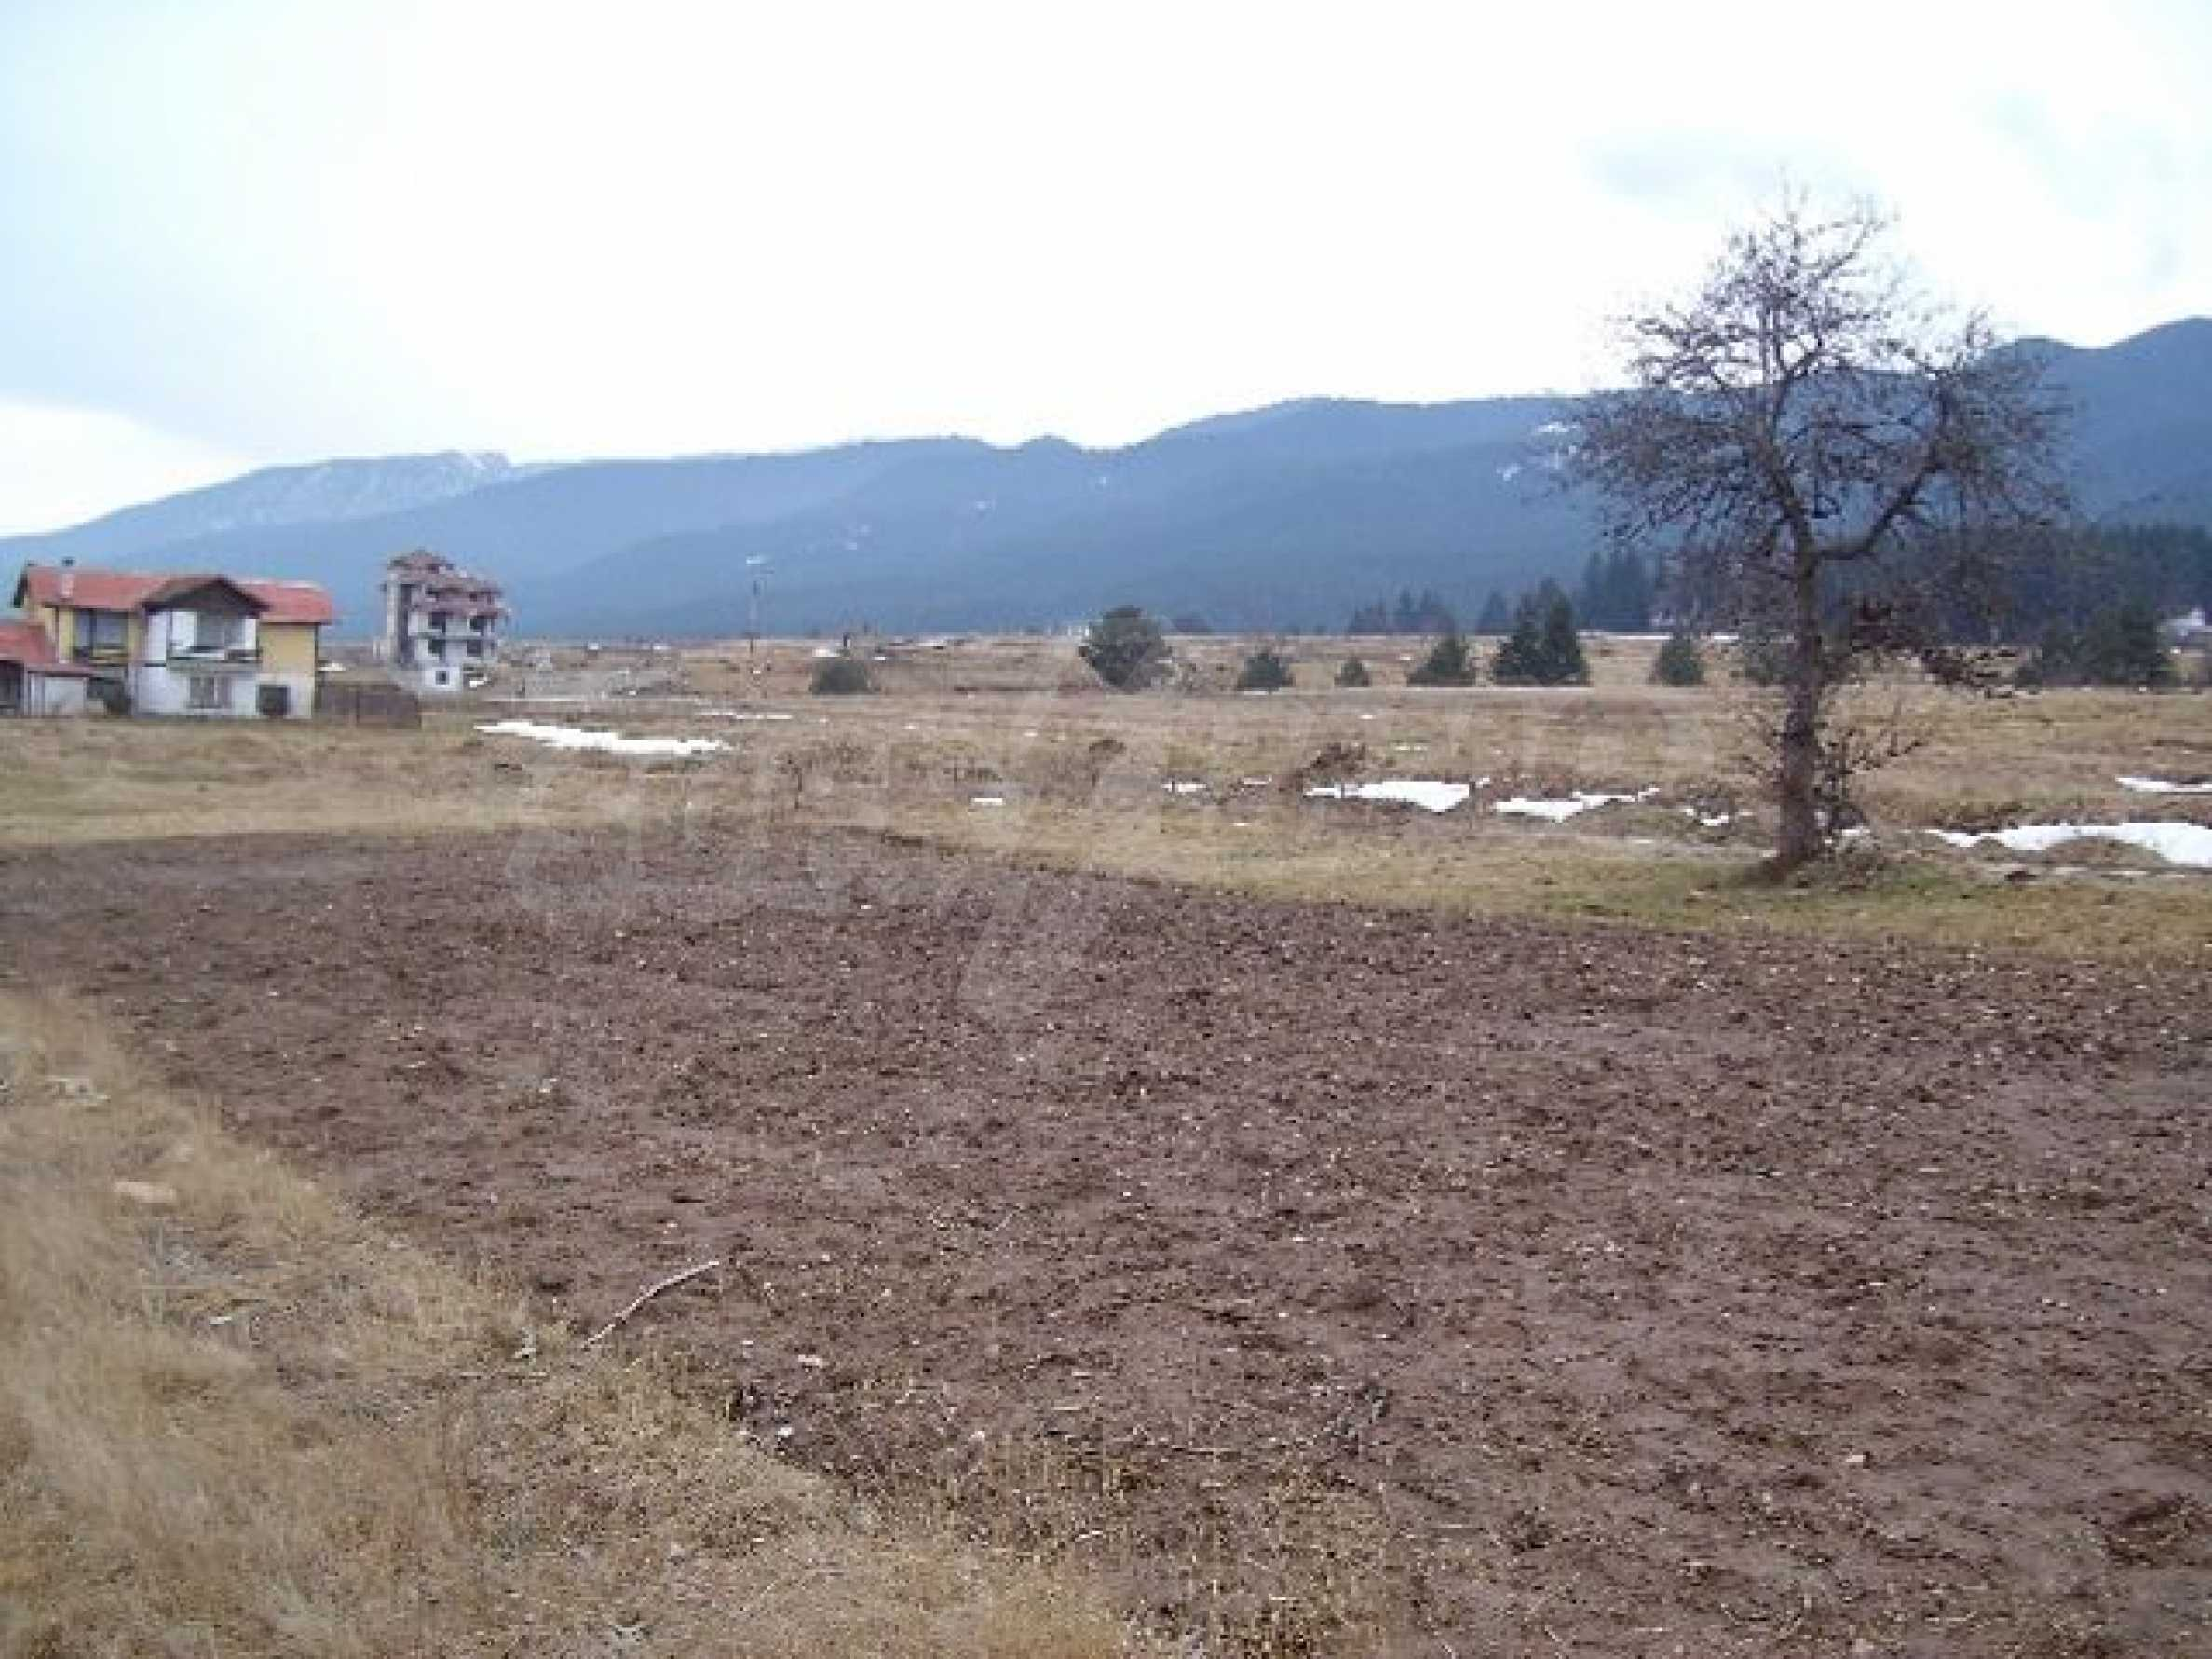 Generously-proportioned plot of land in good area 6